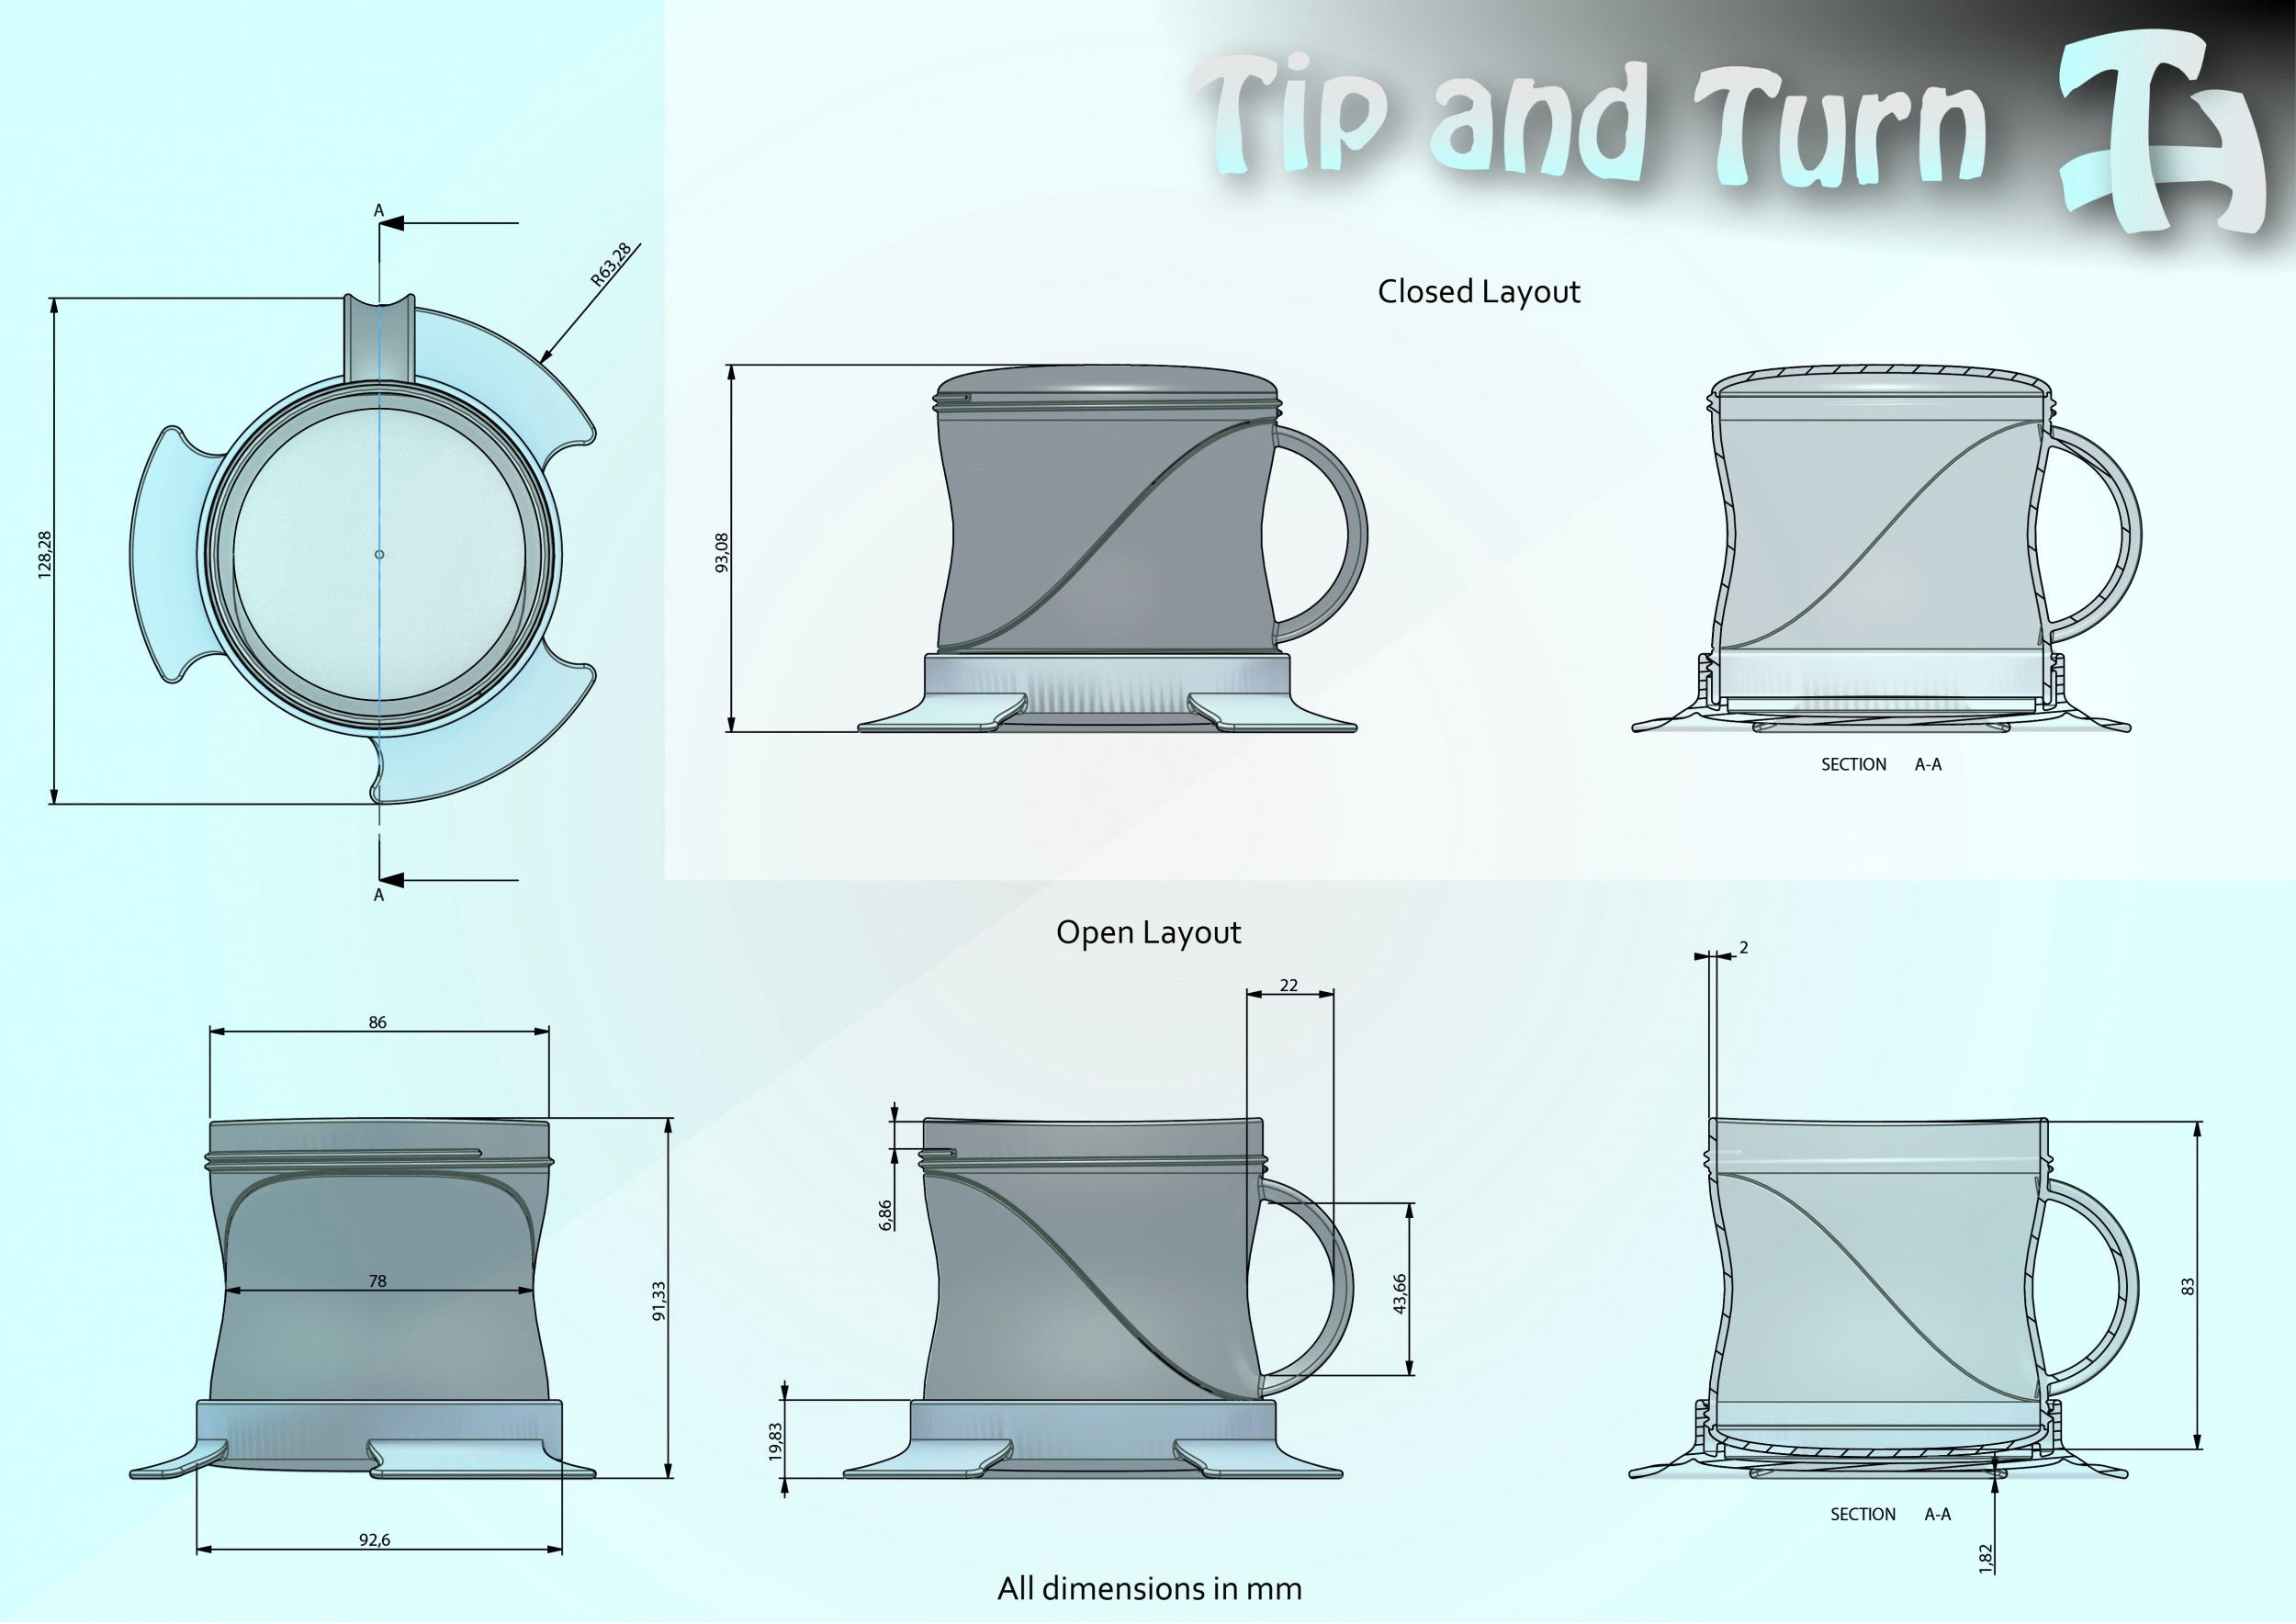 Tip and turn Dimensions